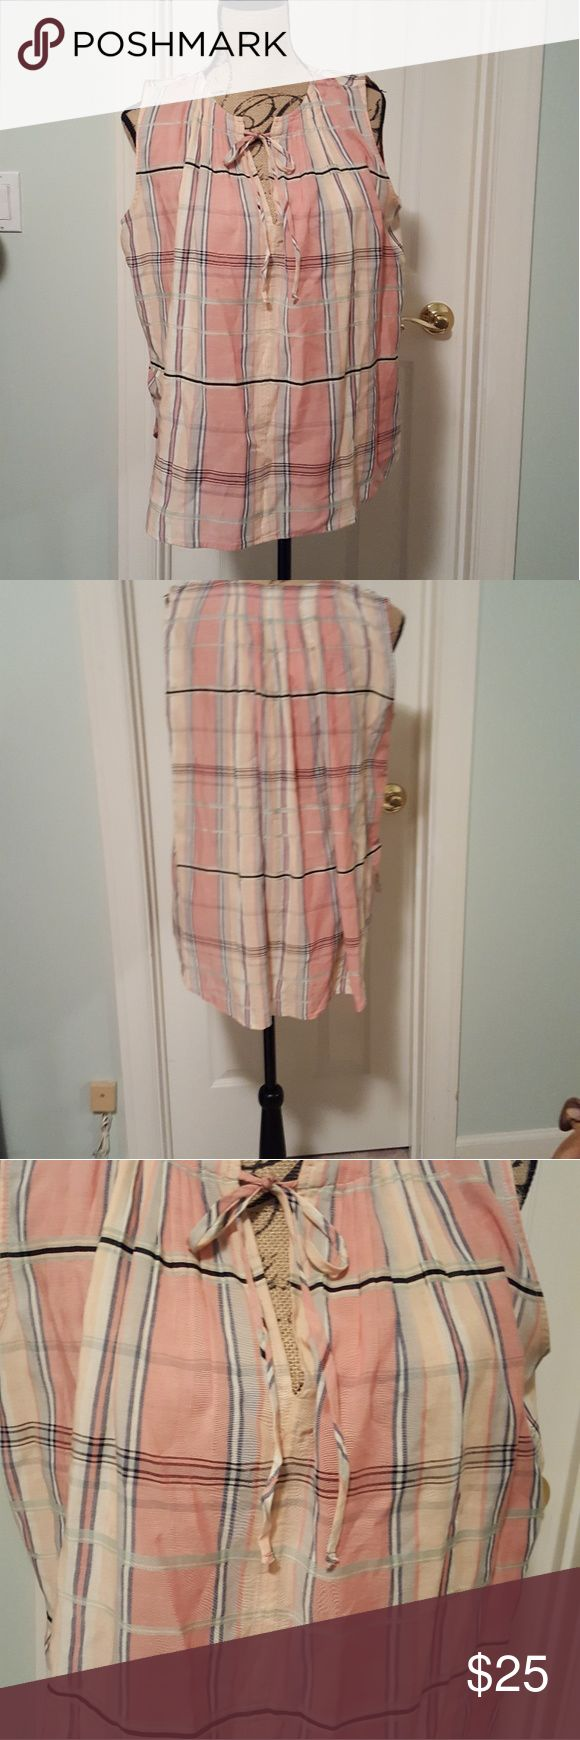 NWT Loft sleeveless blouse Nwt Loft Sleeveless blouse with soft pastel plaid print and ribbon tie at the neckline.  Loose flowy fit. LOFT Tops